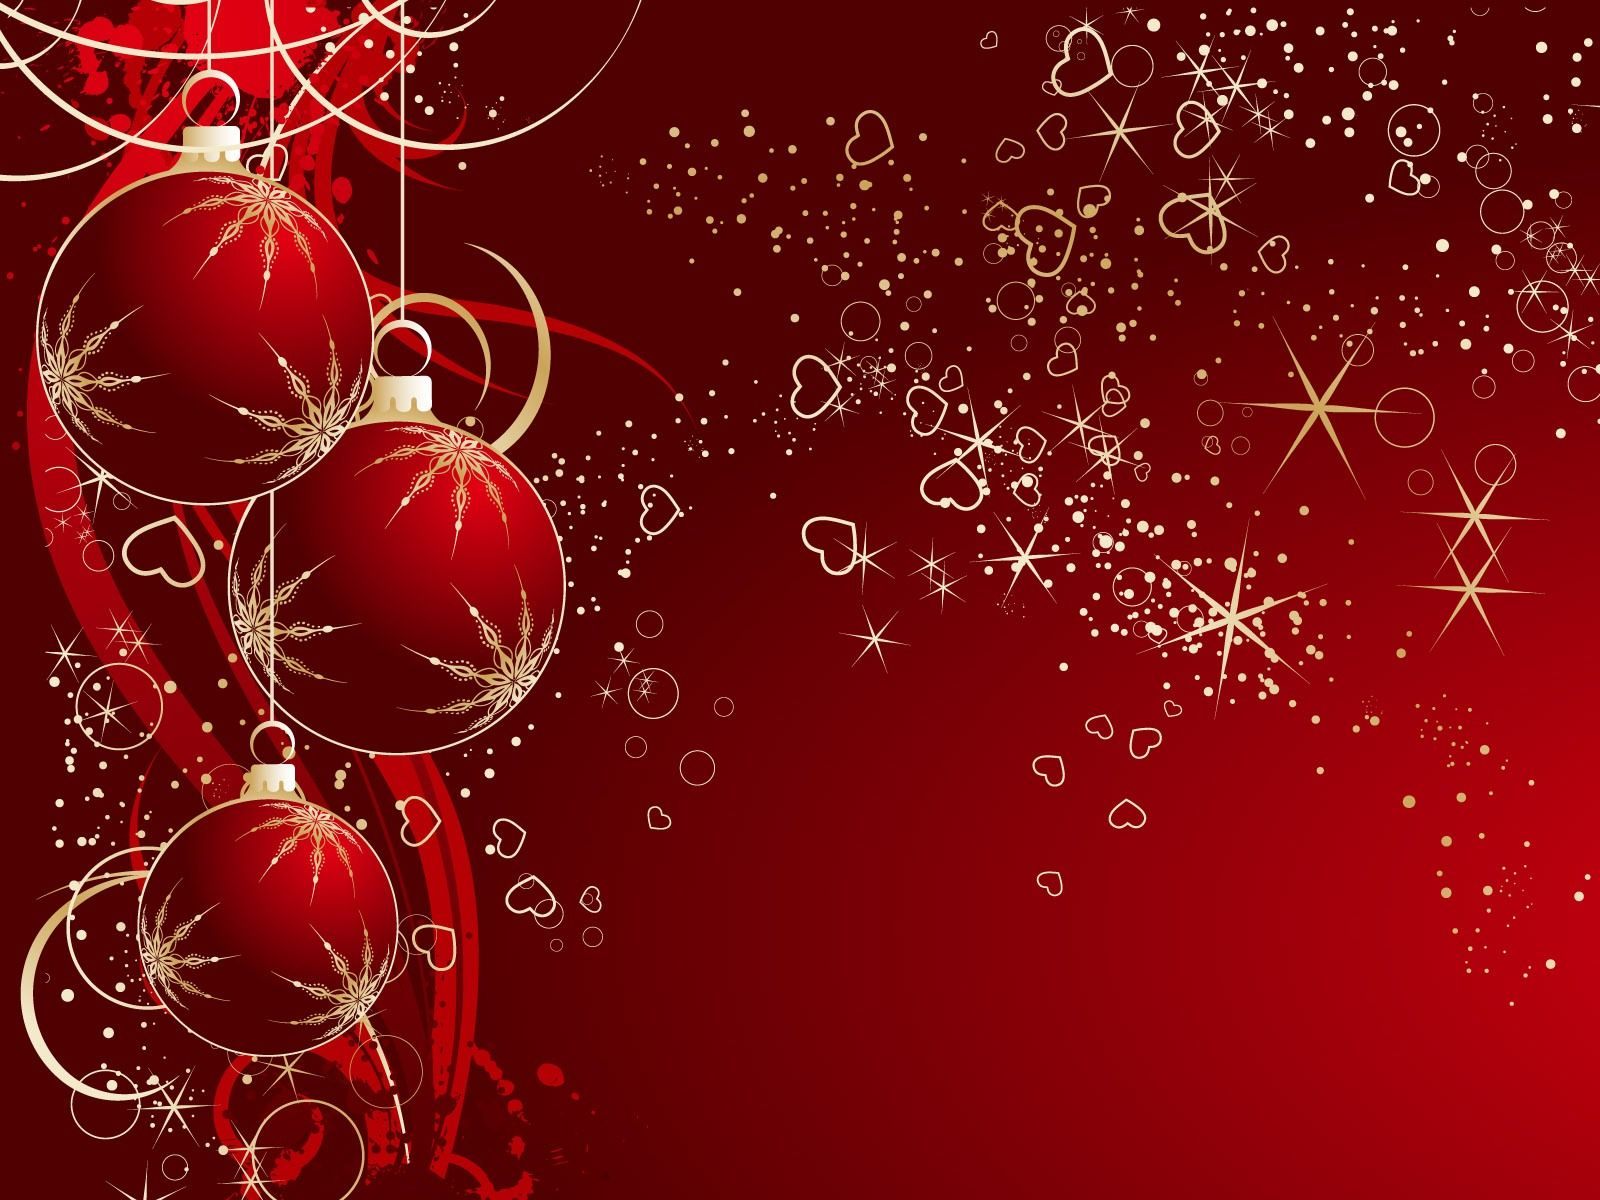 1600x1200 Christmas Balls HD Wallpaper | CHRISTMAS ORNAMENTS | Pinterest ...